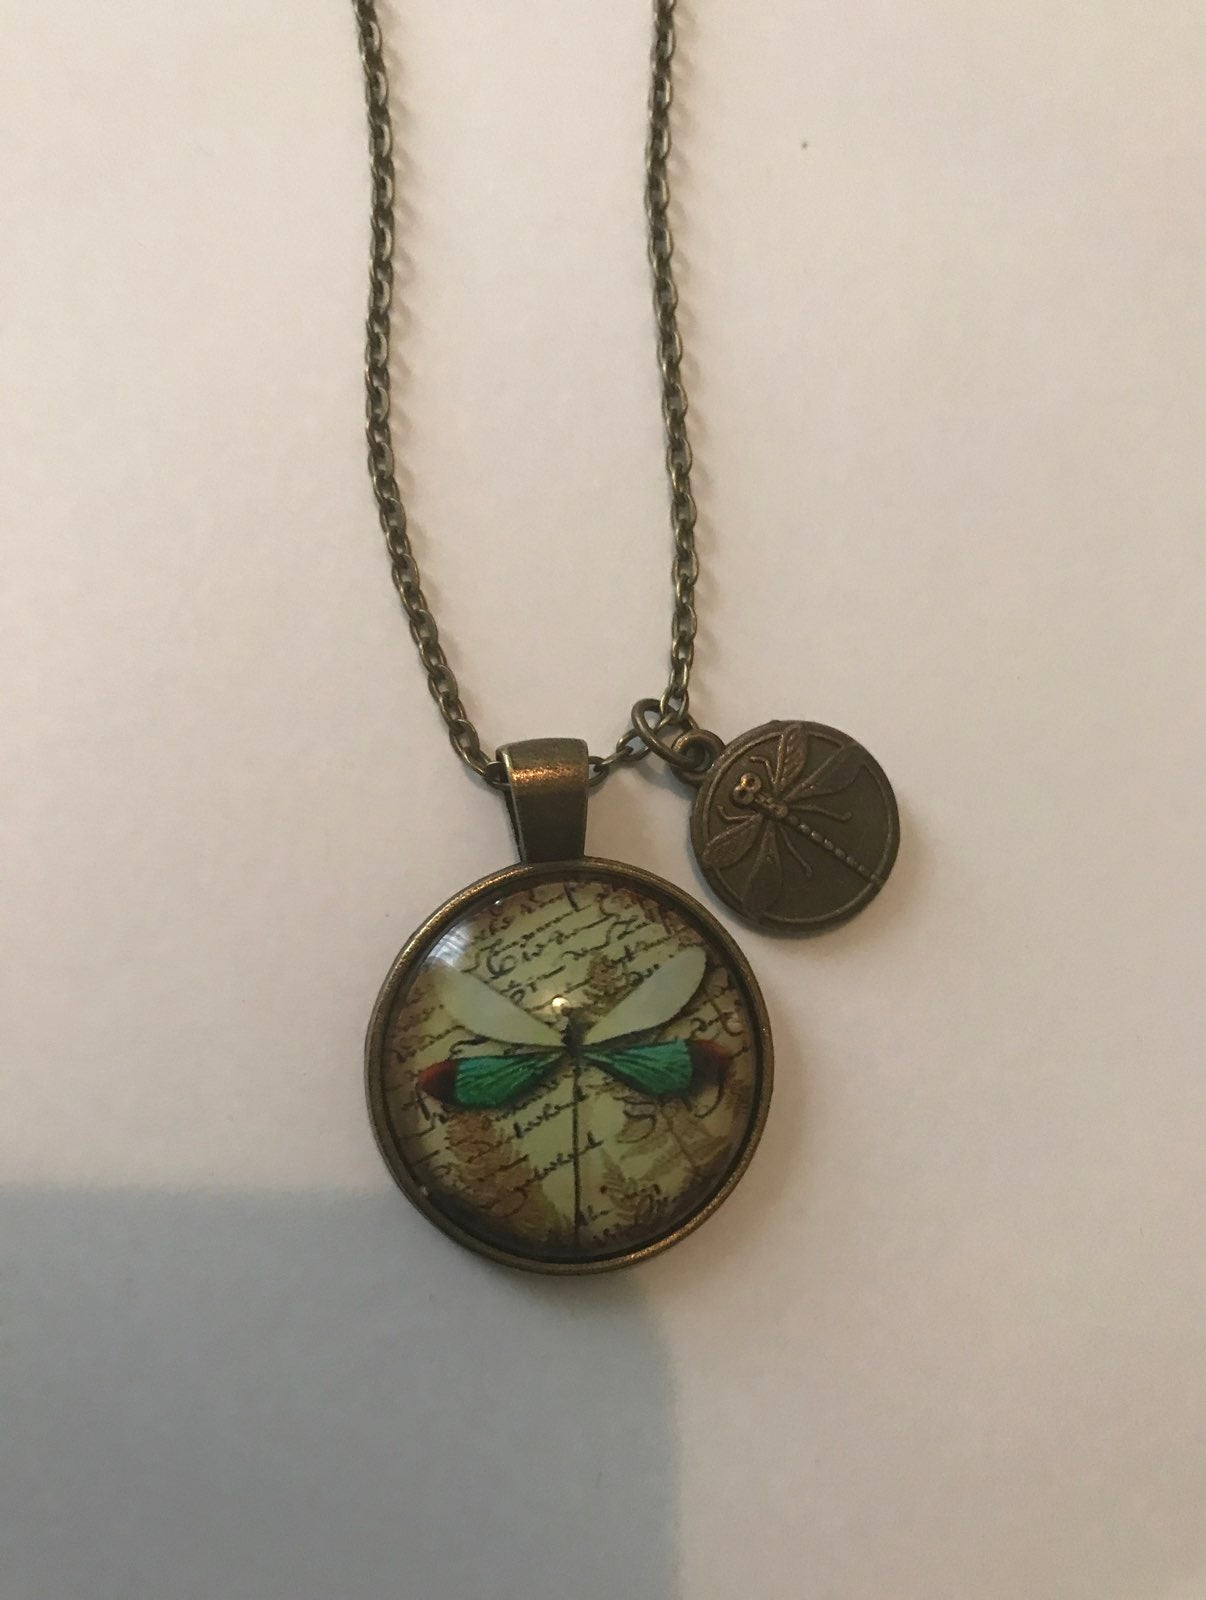 Dragonfly necklace with charm and Chain